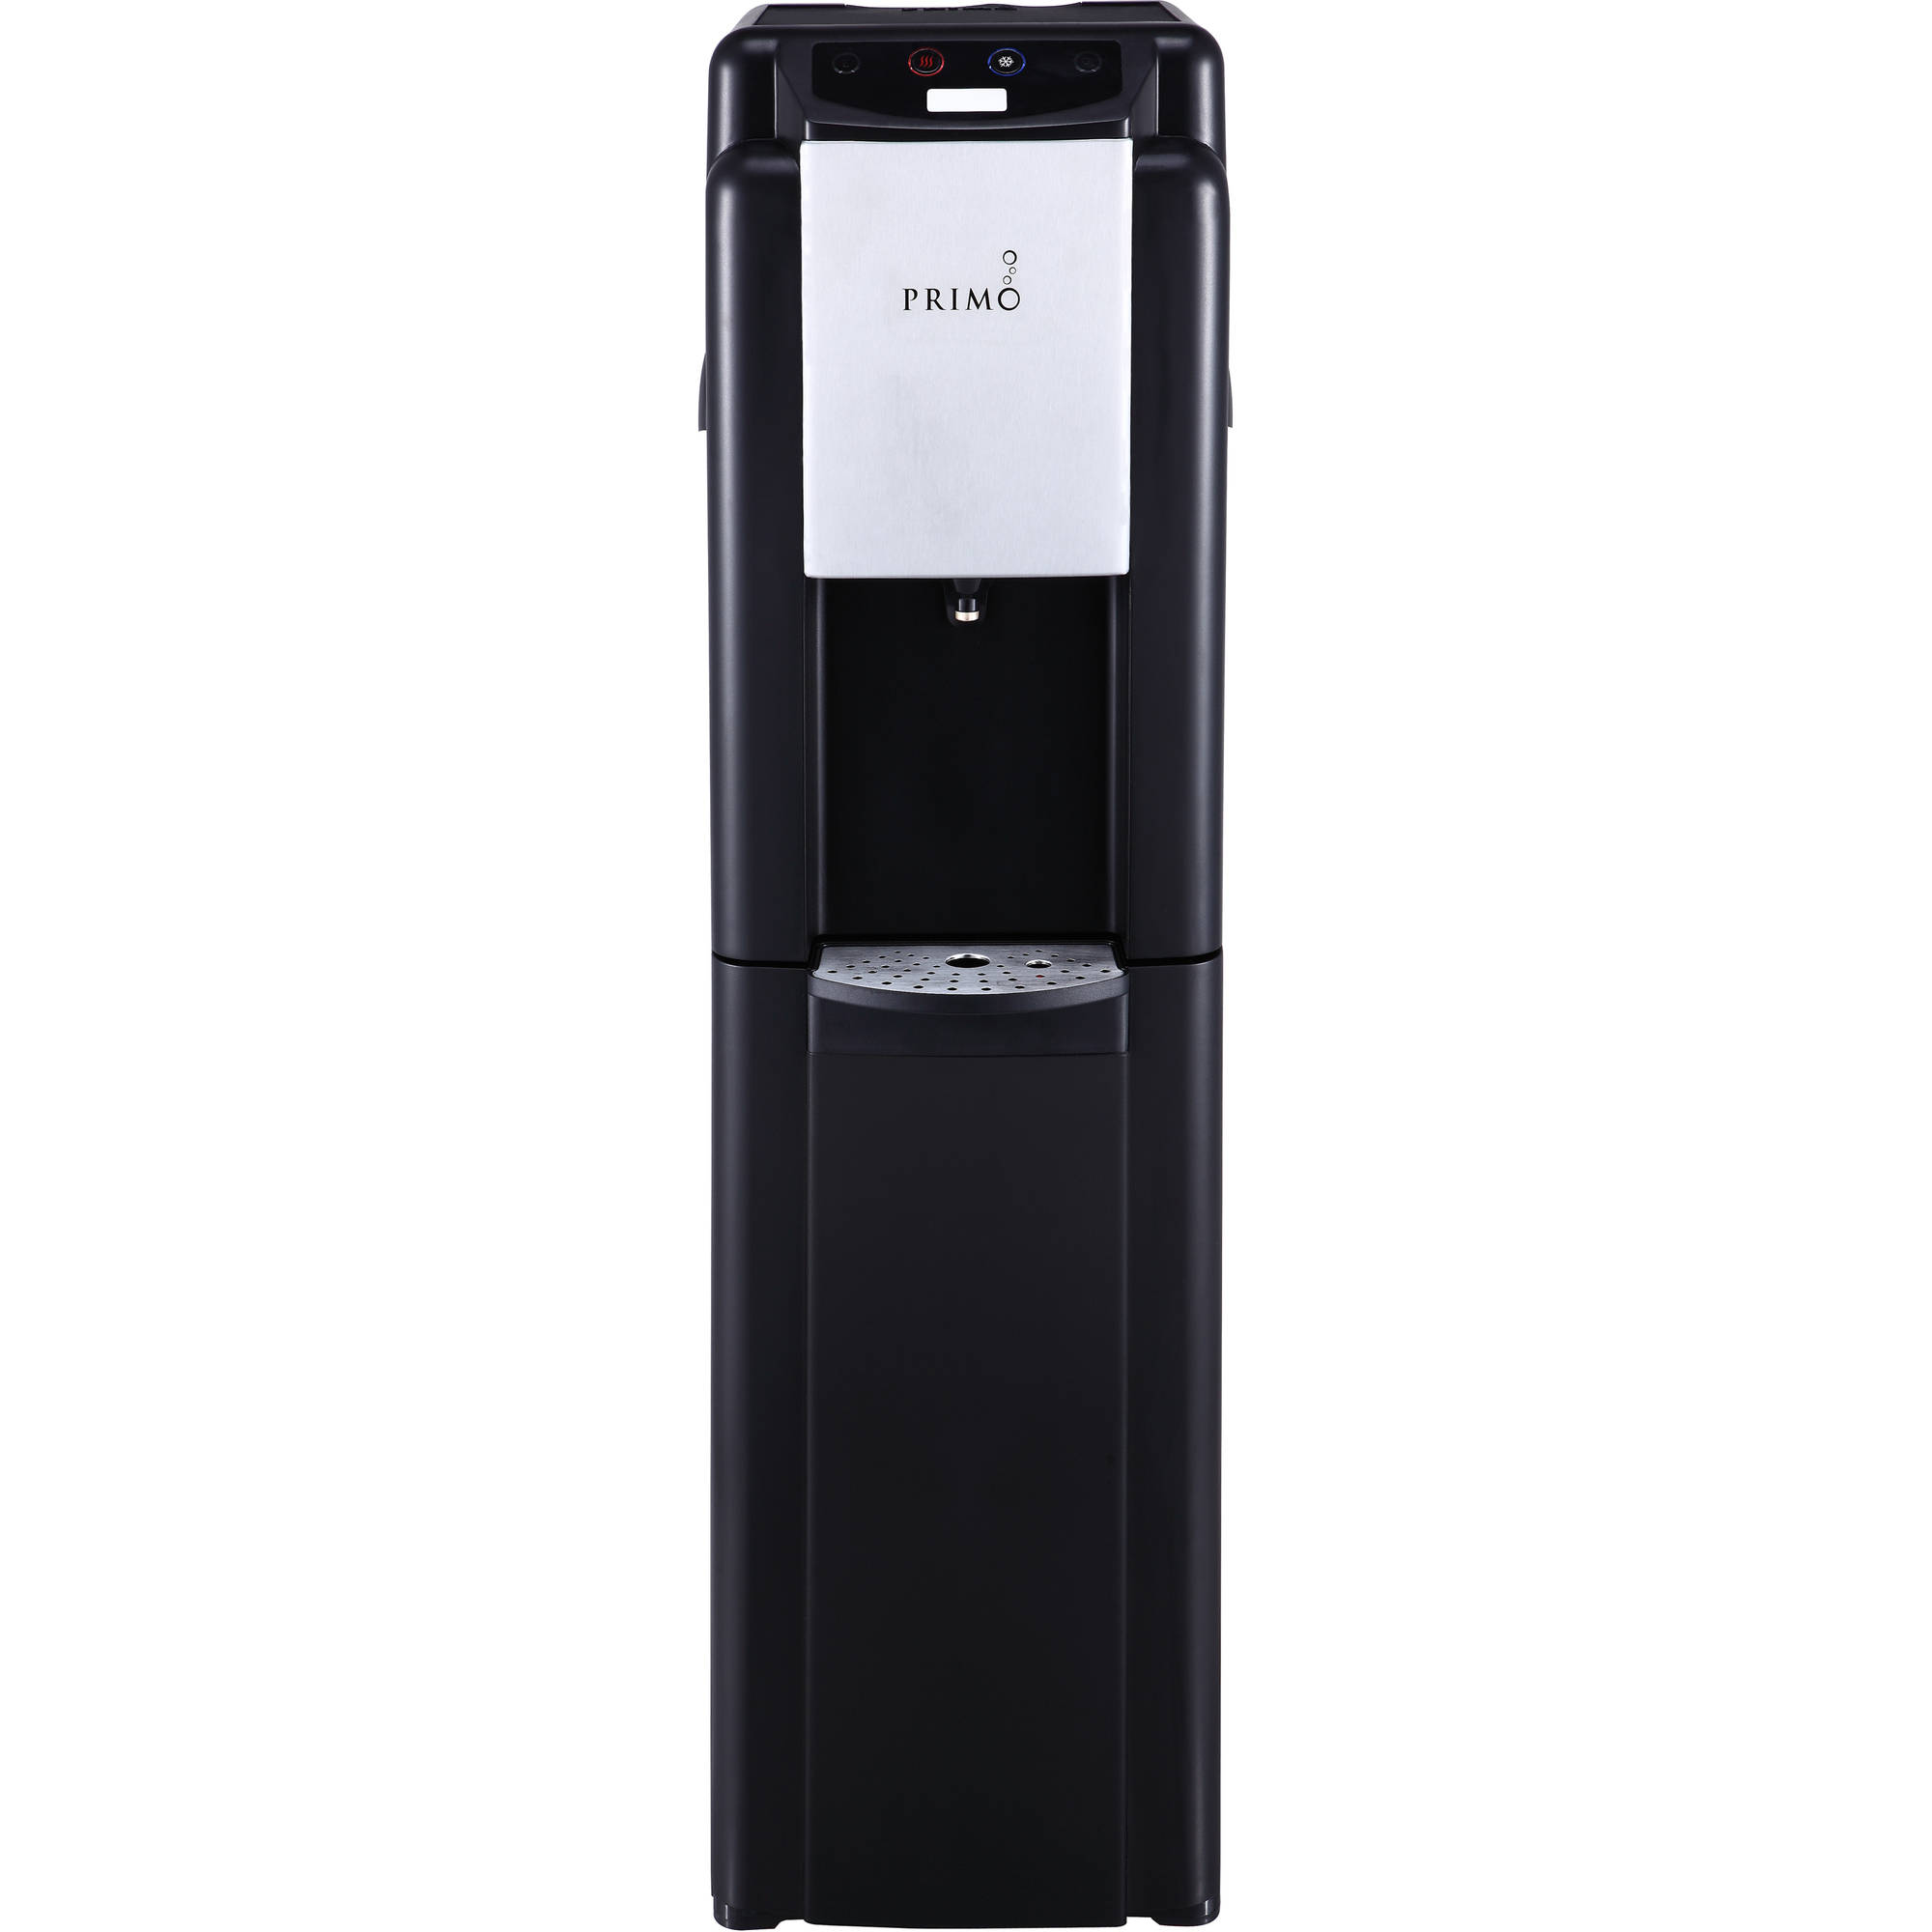 Primo Self-Sanitizing Bottom Loading Hot and Cold Water Dispenser